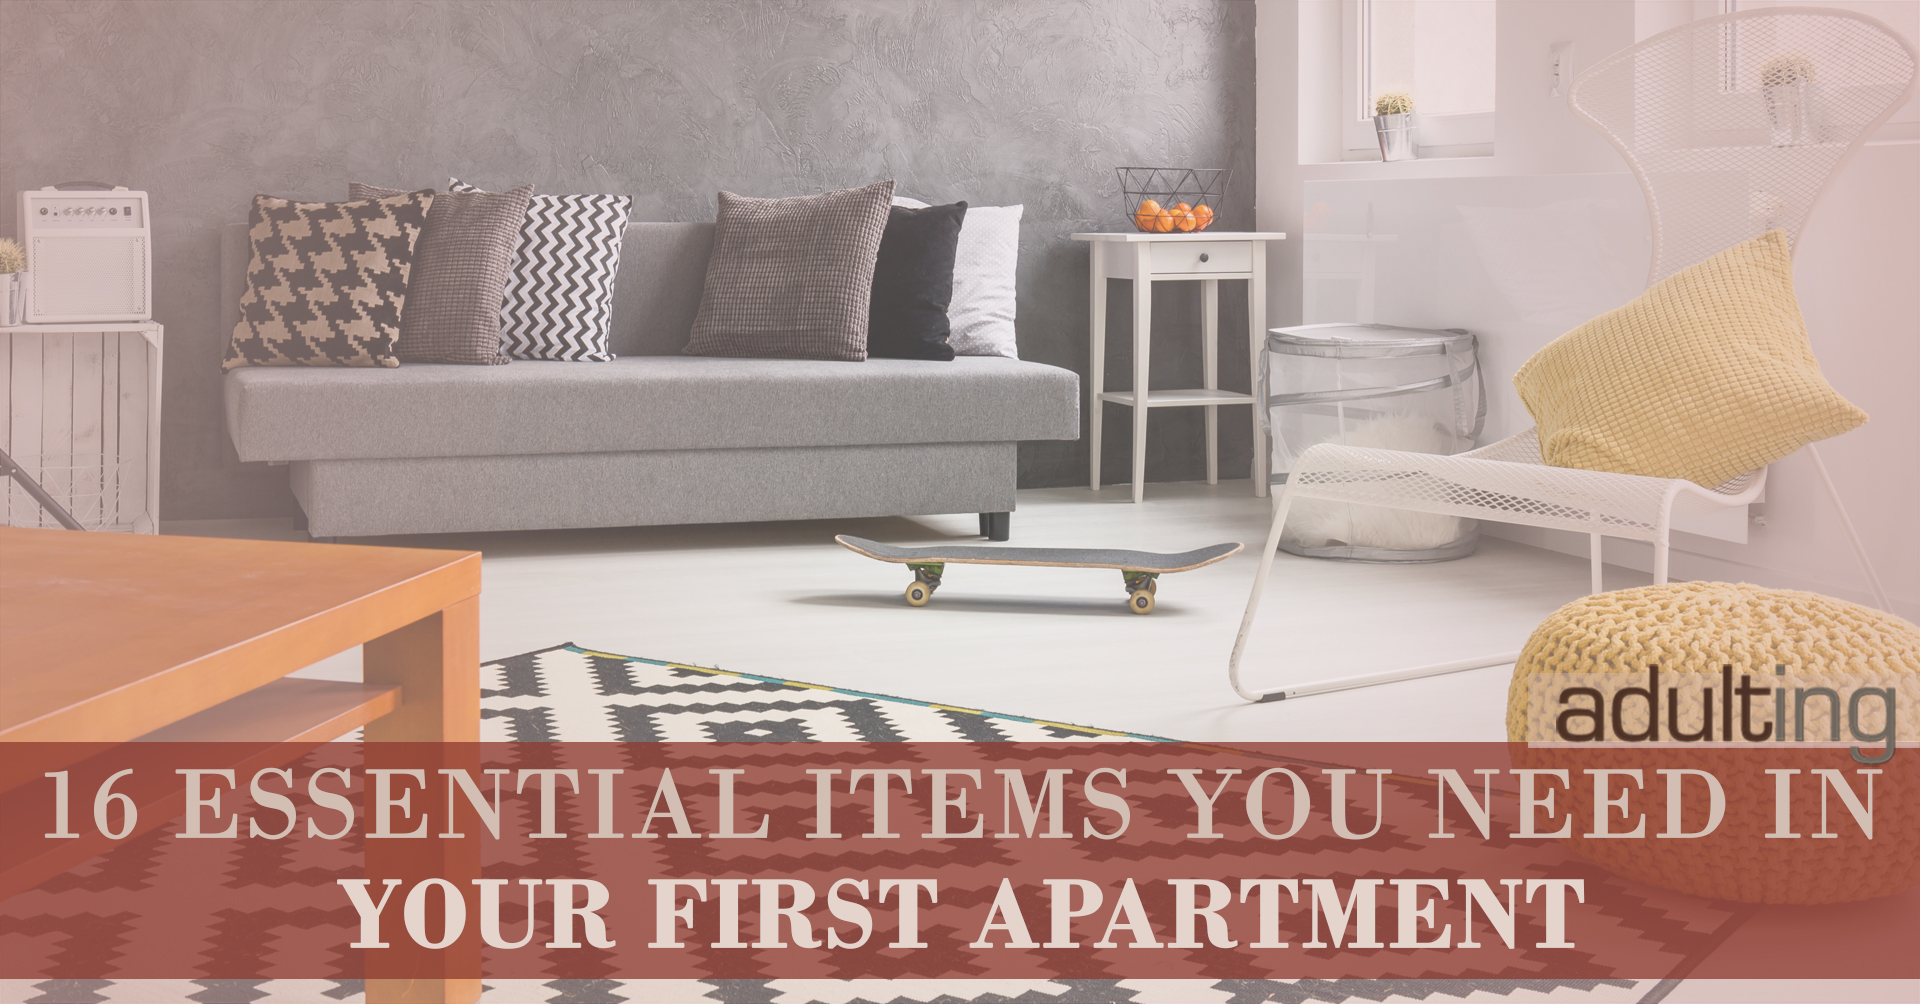 16 Essential Items You Need In Your First Apartment Adulting